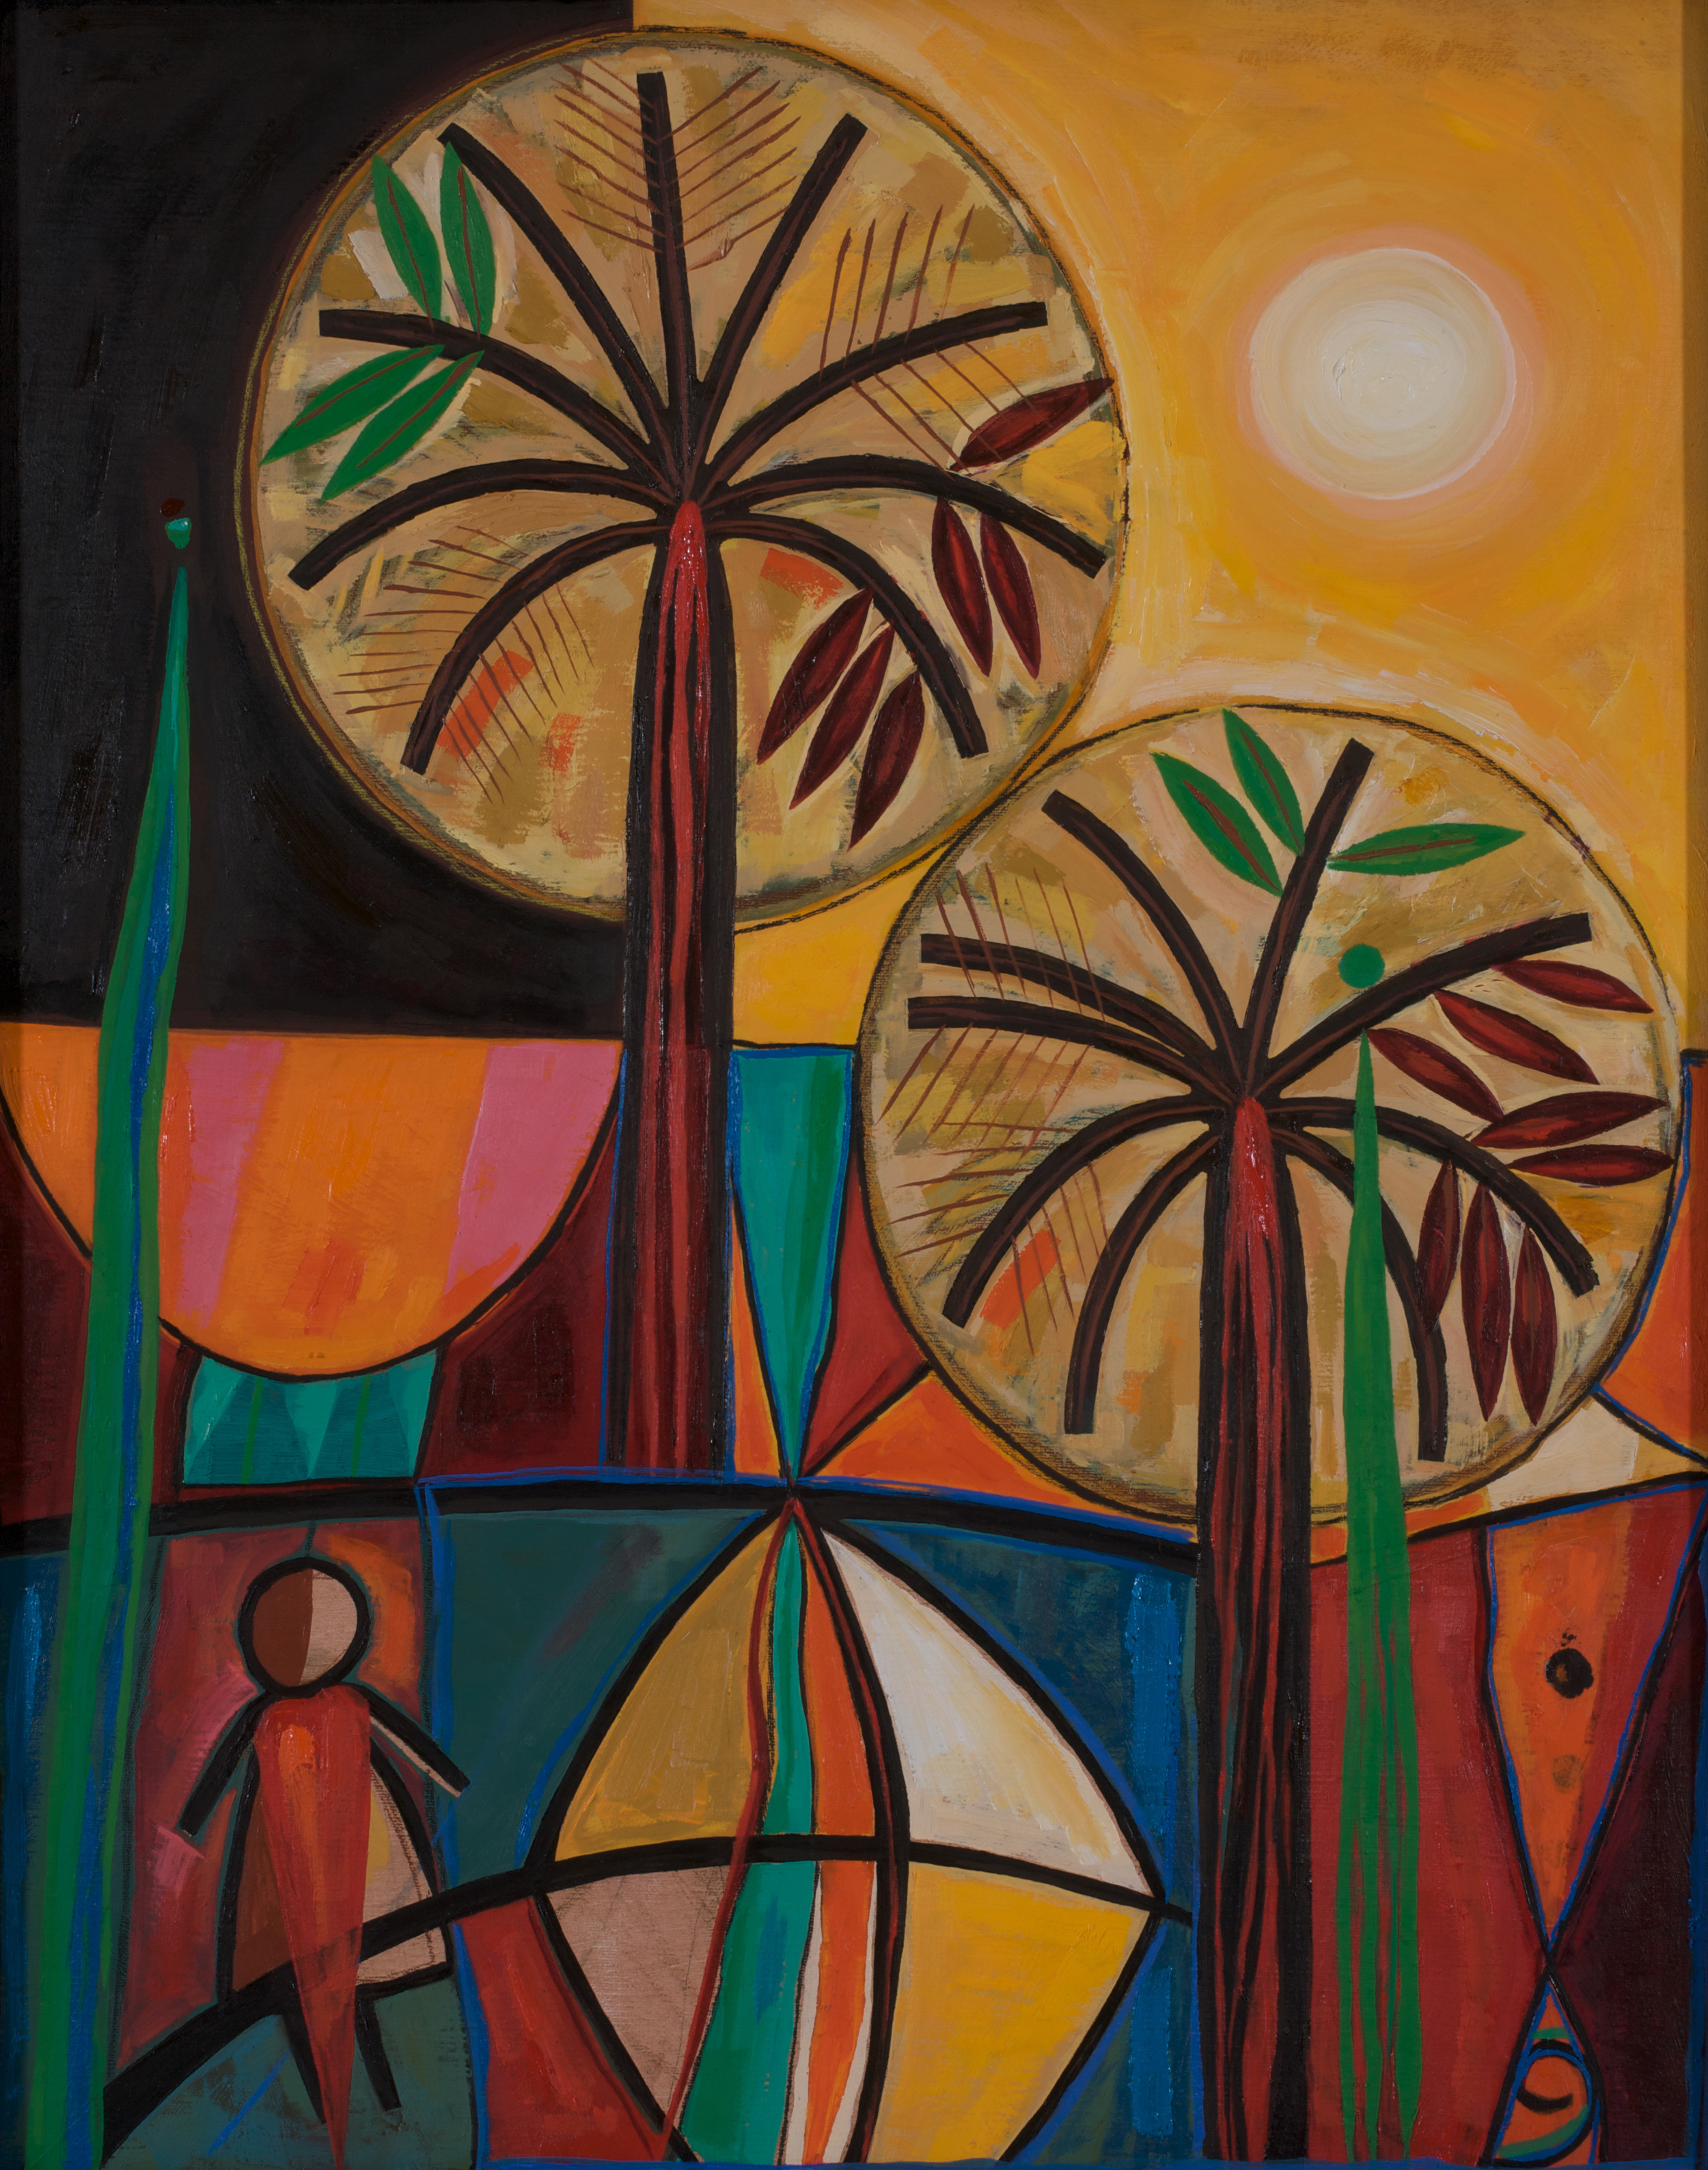 Khalida  Kites and Shattered Dreams  Oil on canvas 50x40cm 2008 Private Collection Amman Jordan